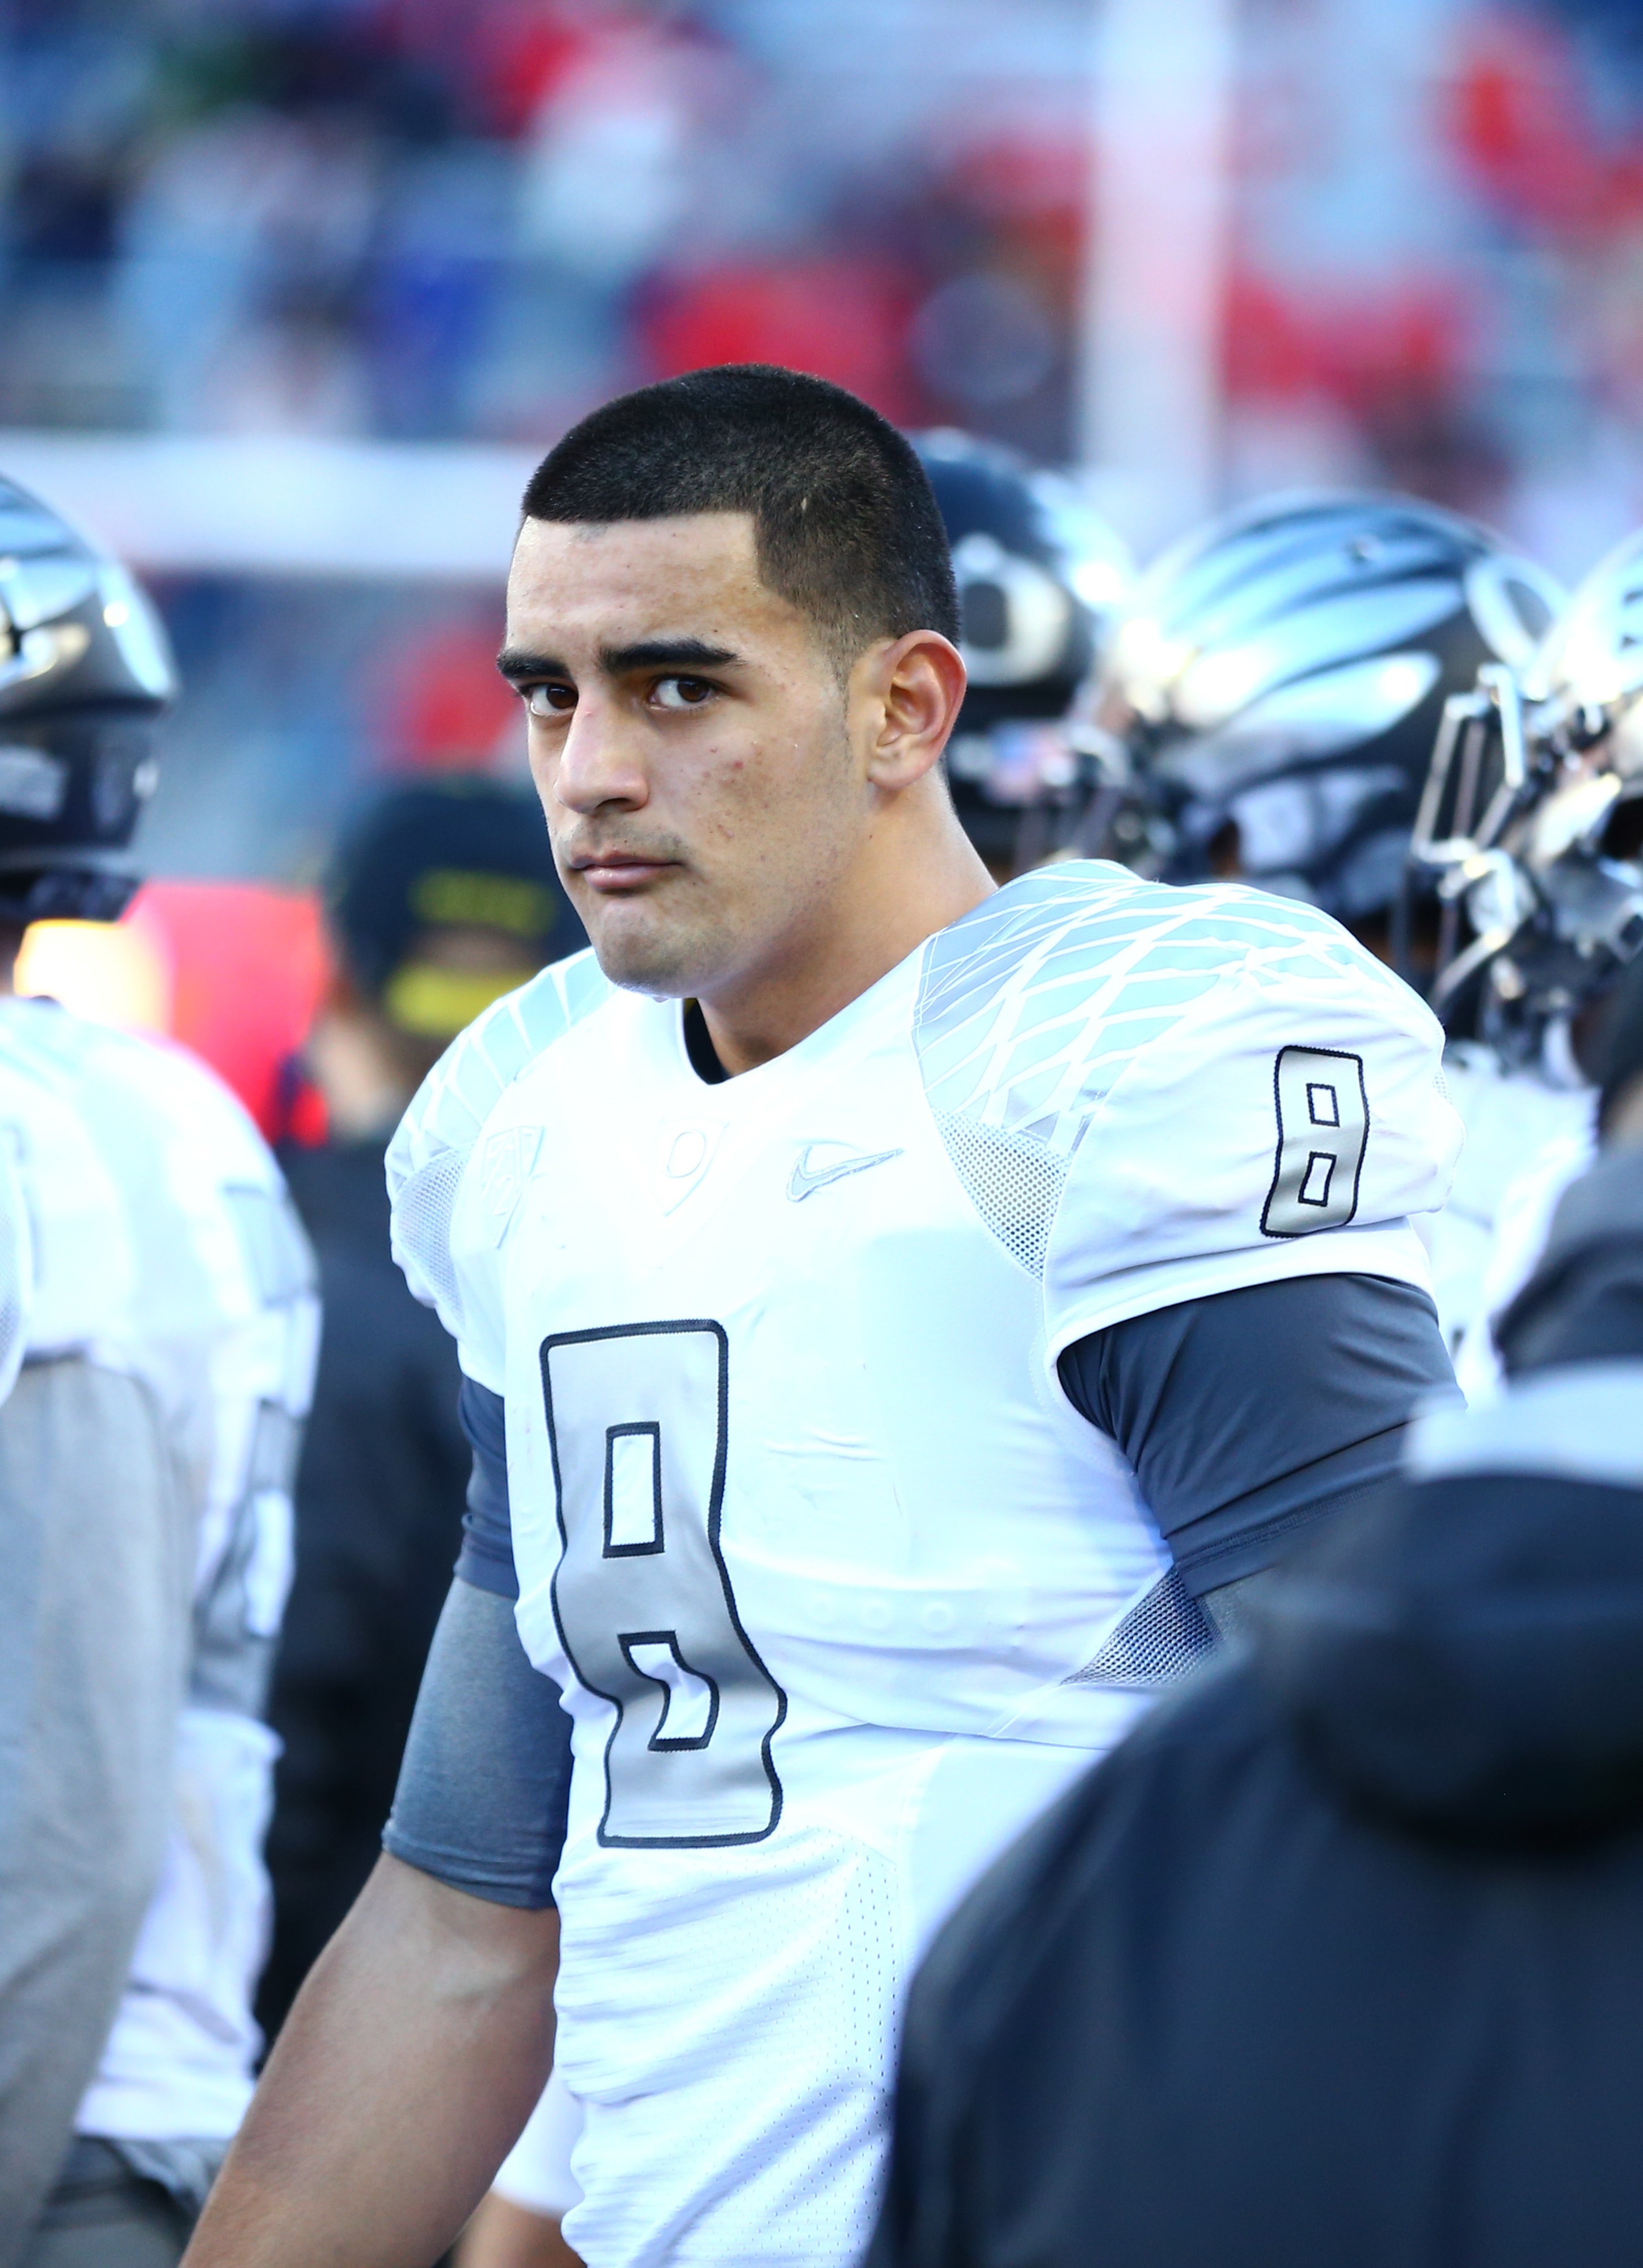 I hope Mariota face doesn't become a thing.